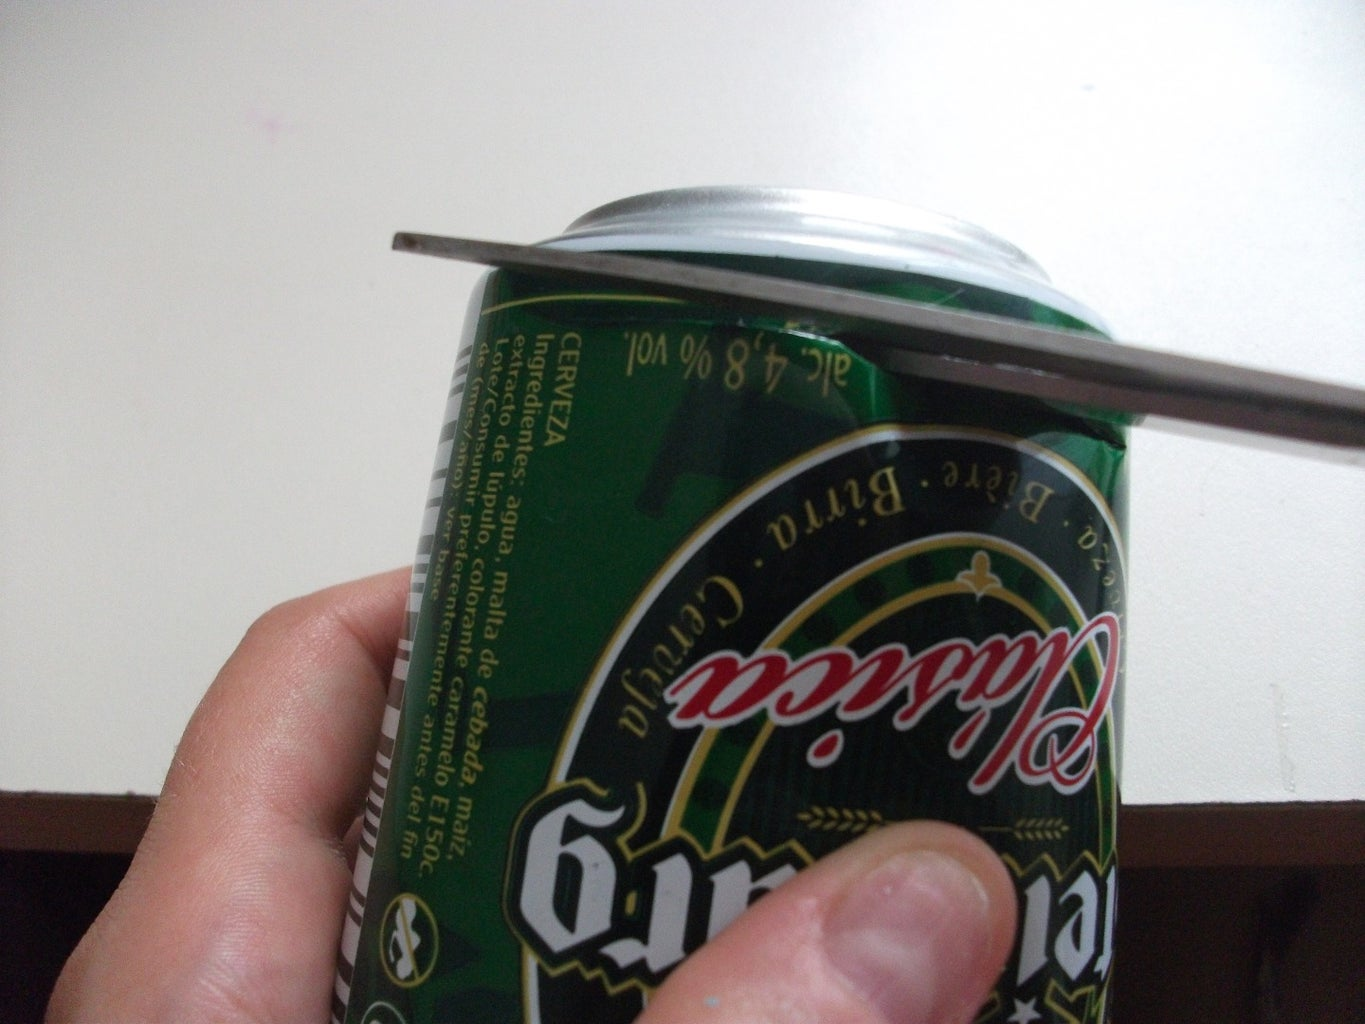 Cutting the Can